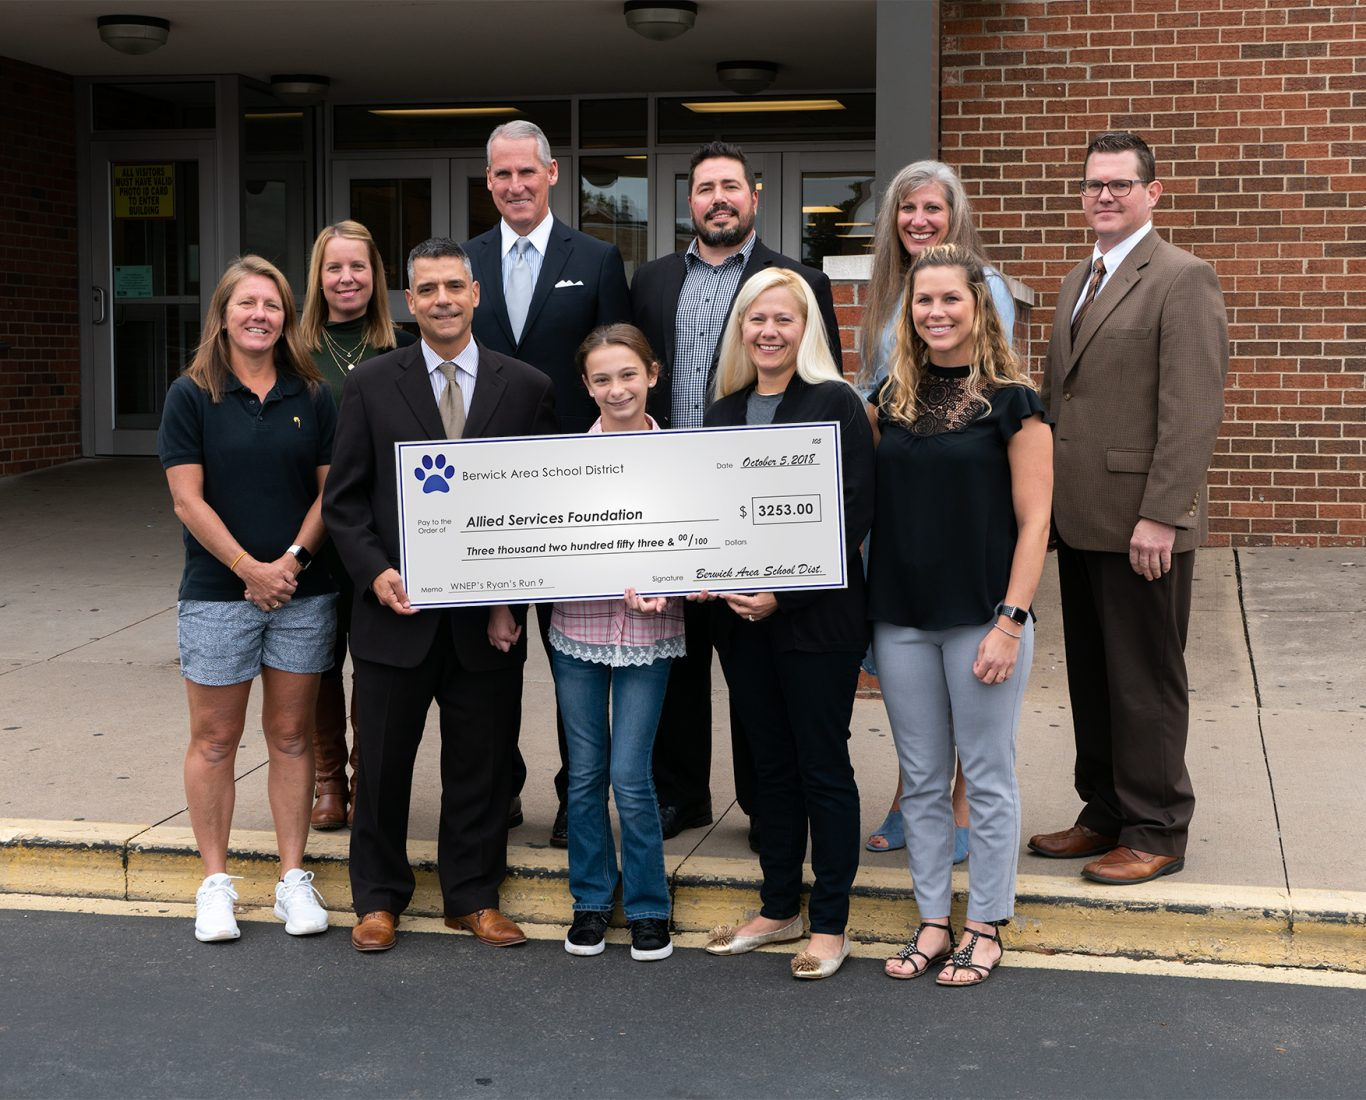 Berwick Area School District adults pose with large check with student